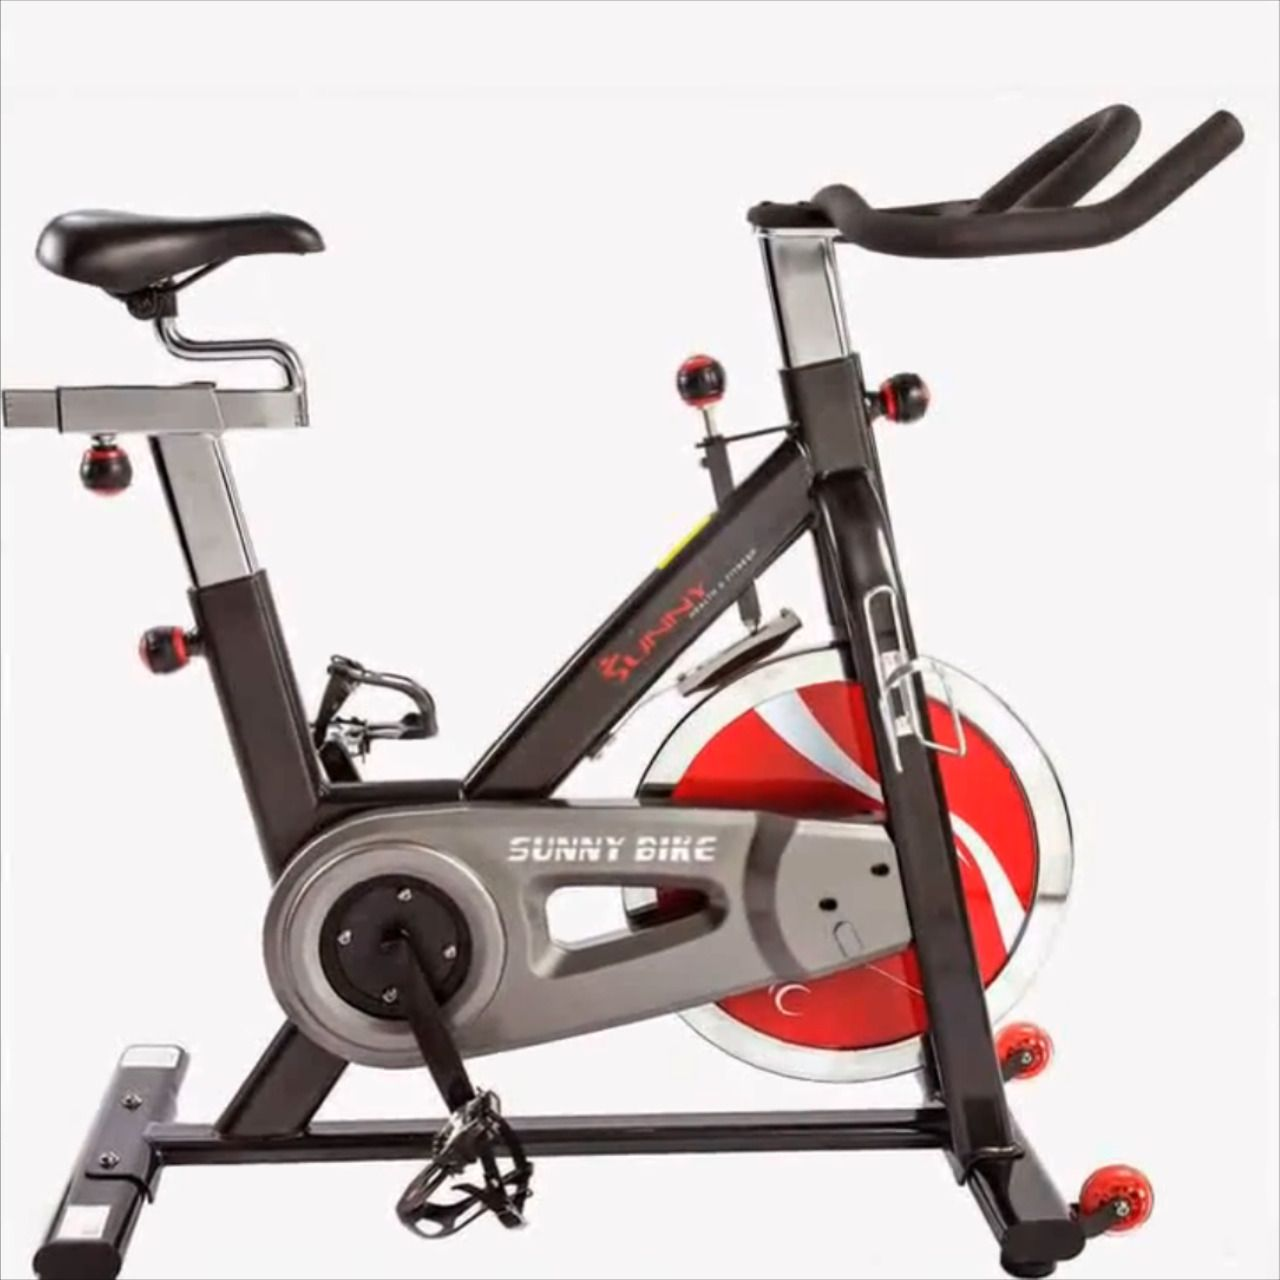 Elliptical Vs Stationary Bike Exercise Bike Target Kmart